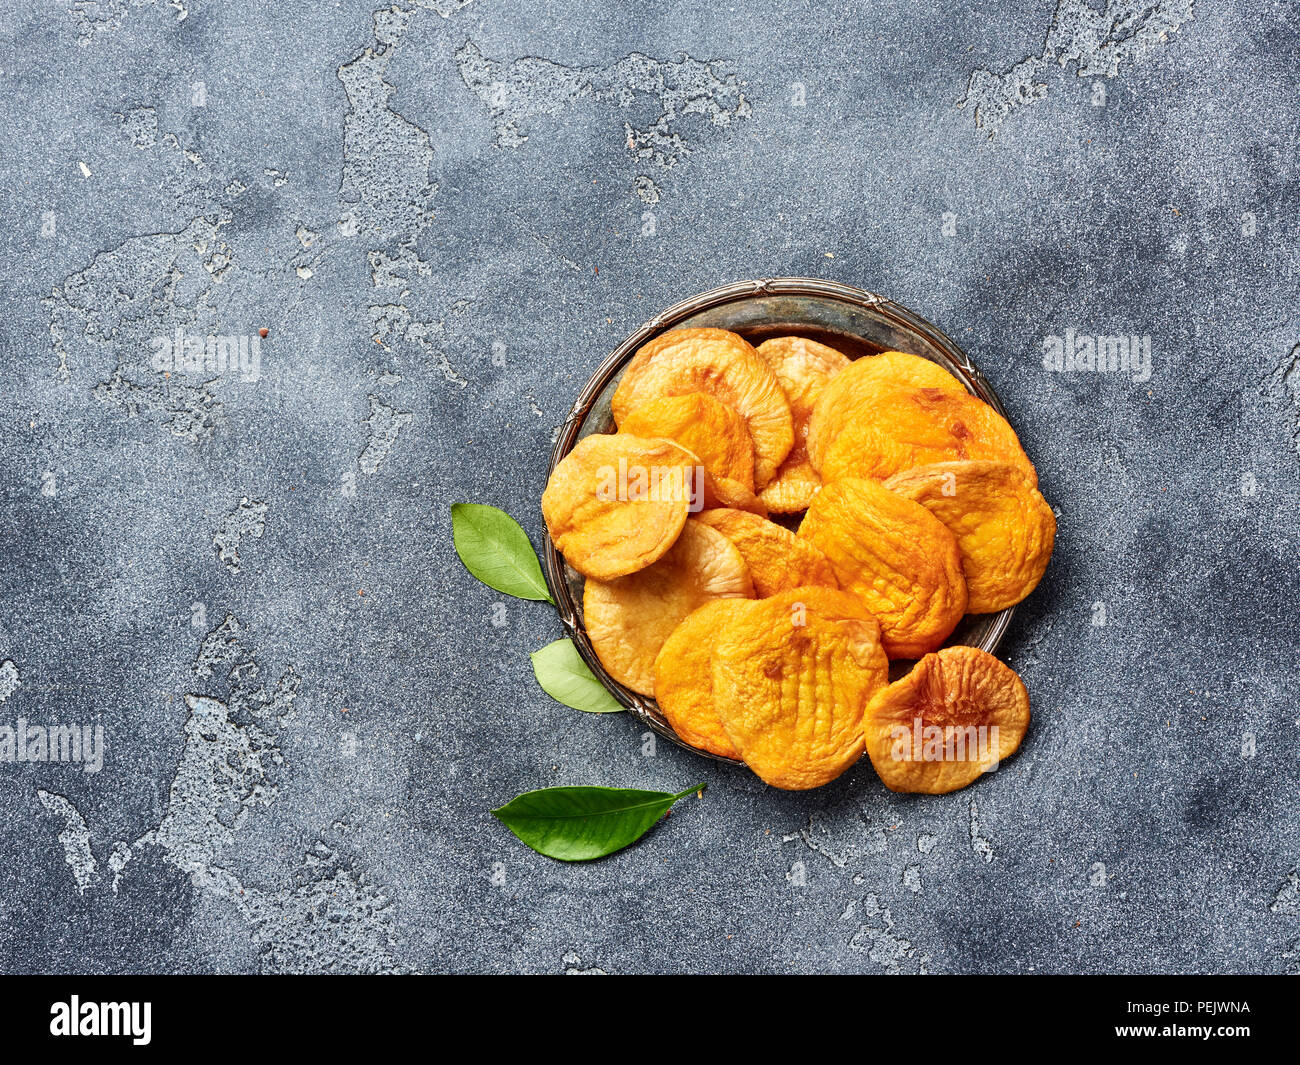 Dried apricots on gray background. Top view. - Stock Image